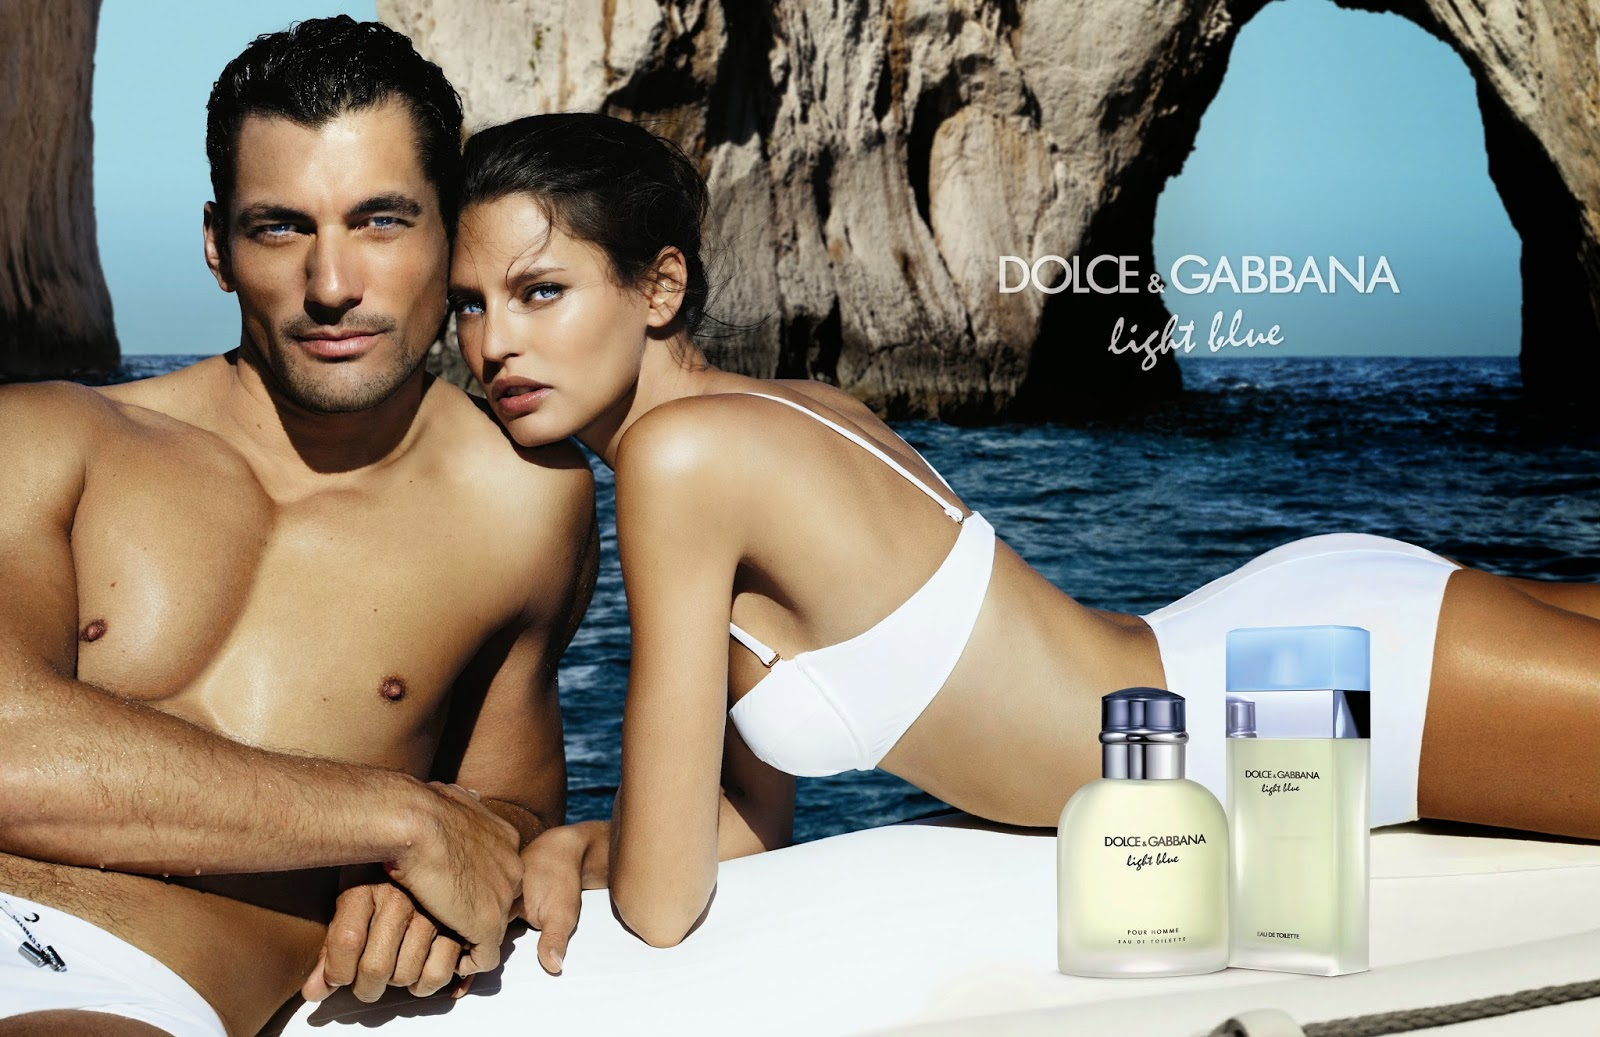 [Sponsored Video] Dolce & Gabbana's Light Blue, a Mediterranean Love Story